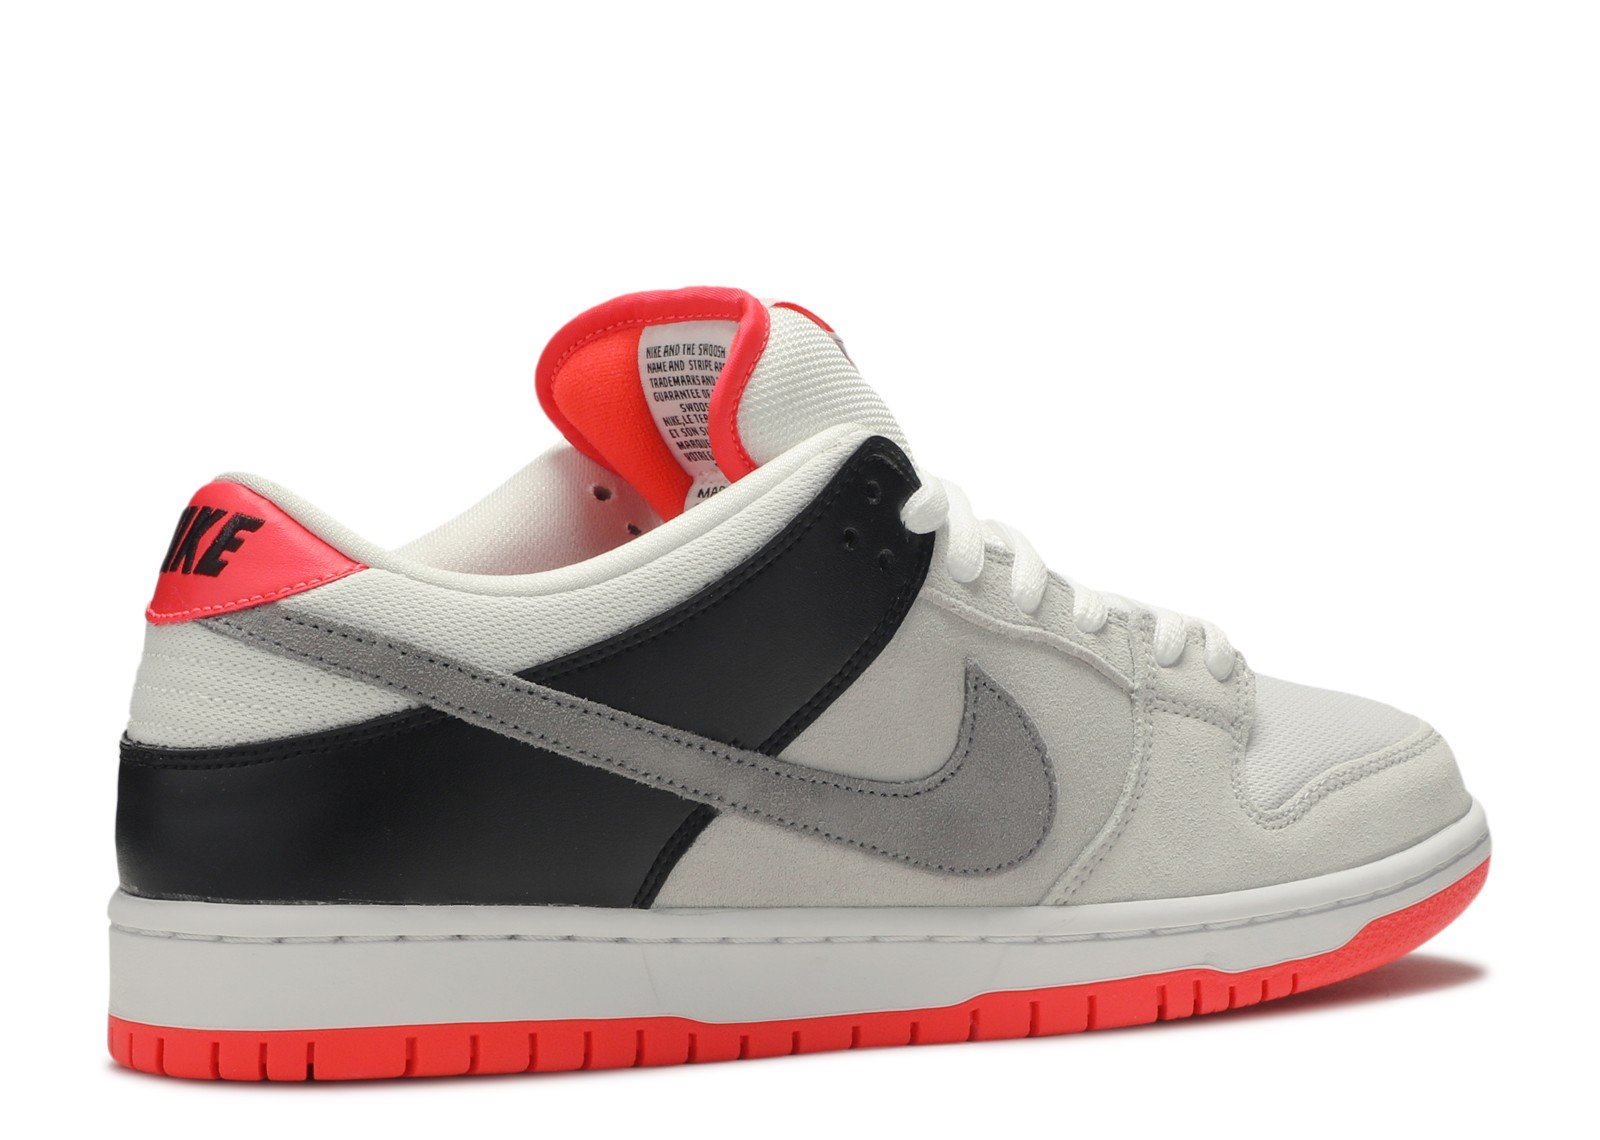 nike-sb-dunk-low-pro-infrared-cd2563-004-release-20200201